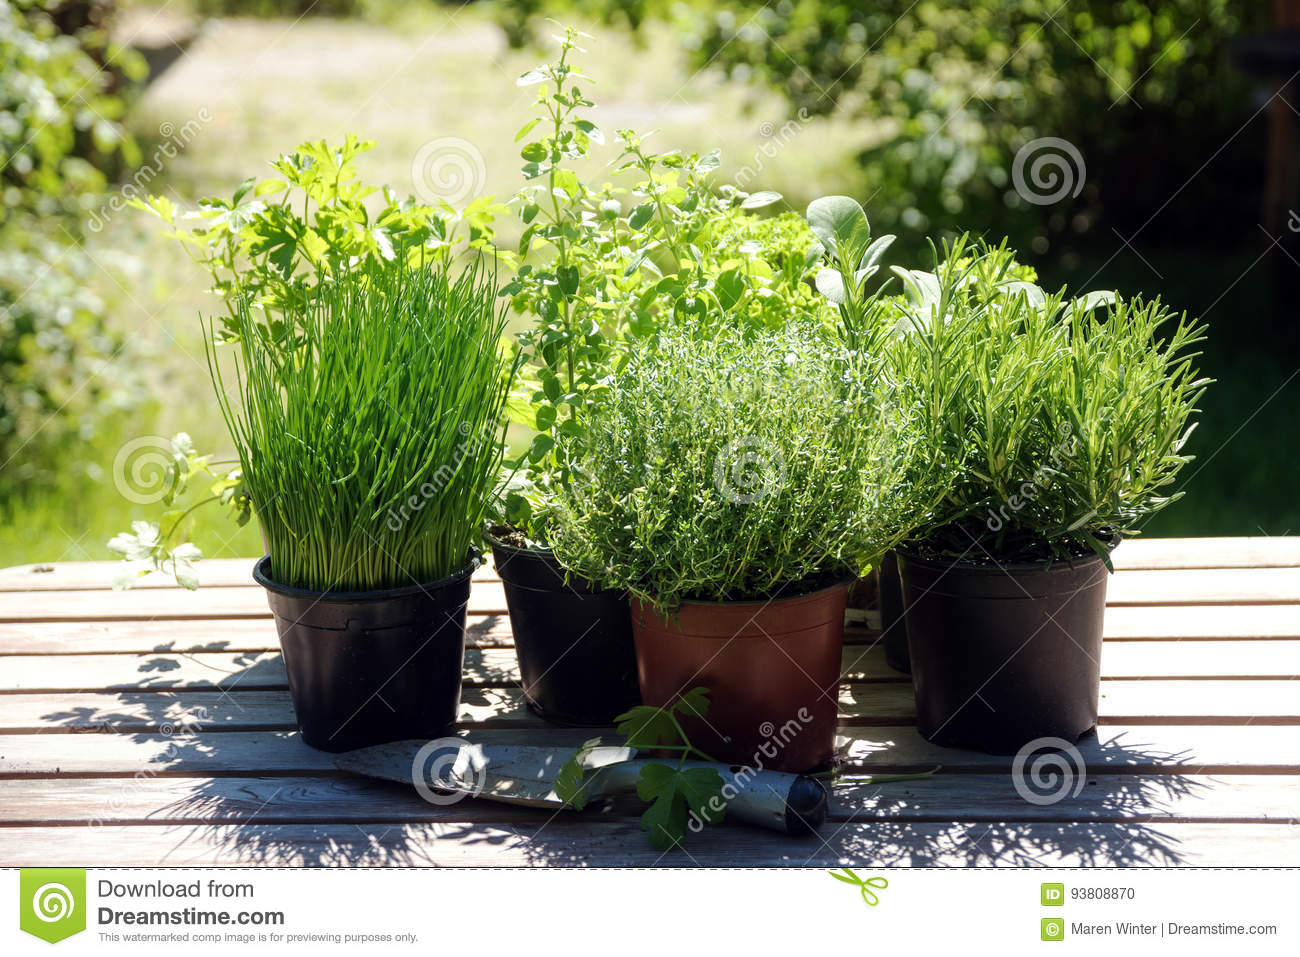 12041eb29e9 Potted kitchen herbs such as rosemary, thyme, parsley, sage, oregano and  chives on a wooden table in the sunny garden, for fresh and healthy cooking